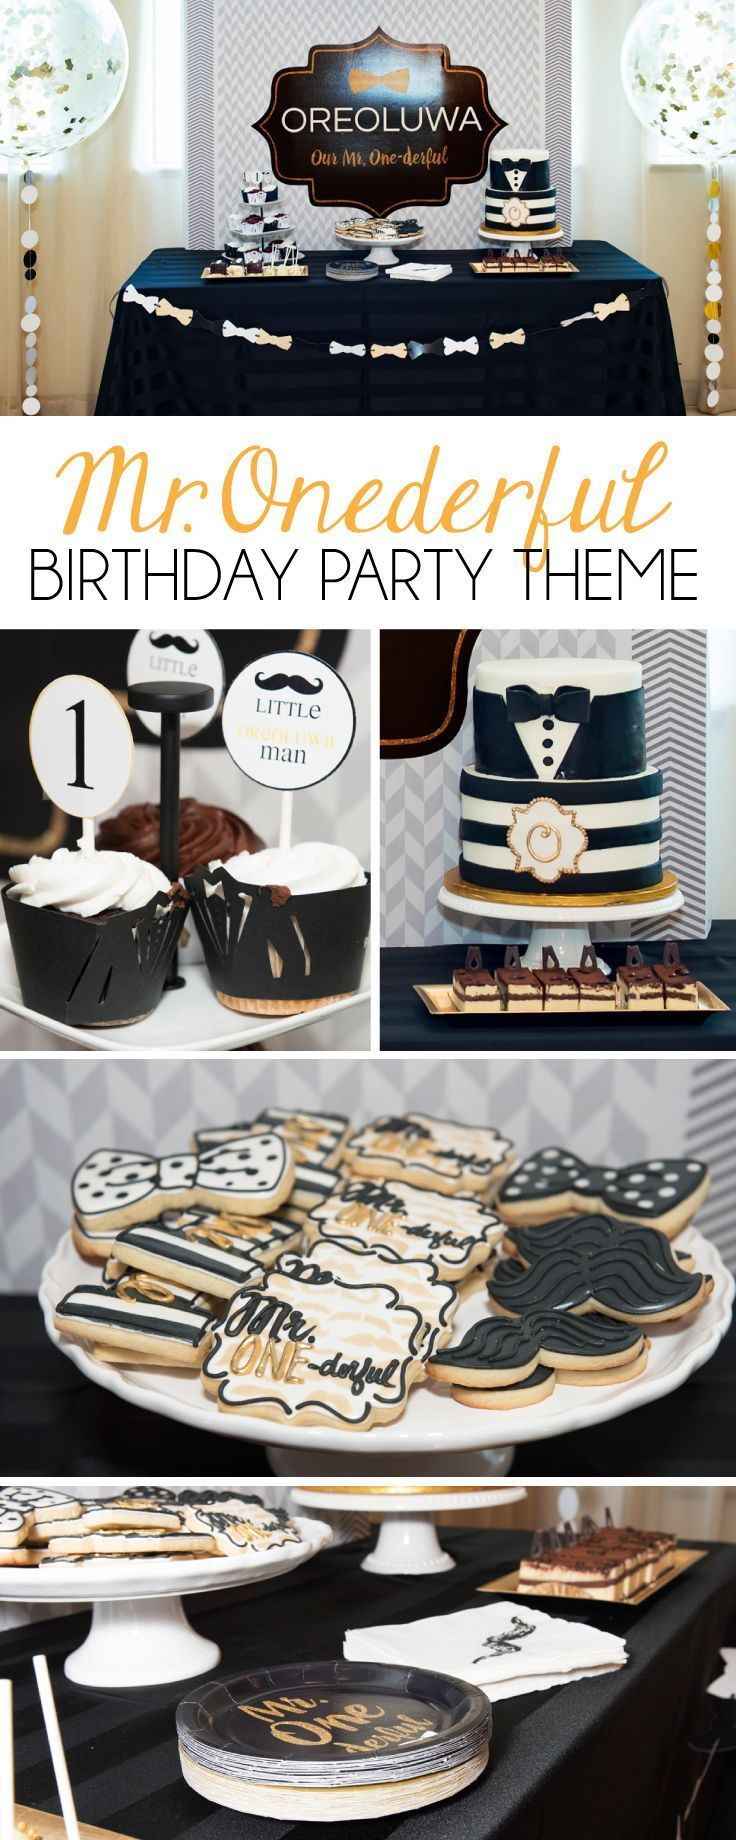 How to Throw a Mr. Onederful Birthday Party - Crowning Details